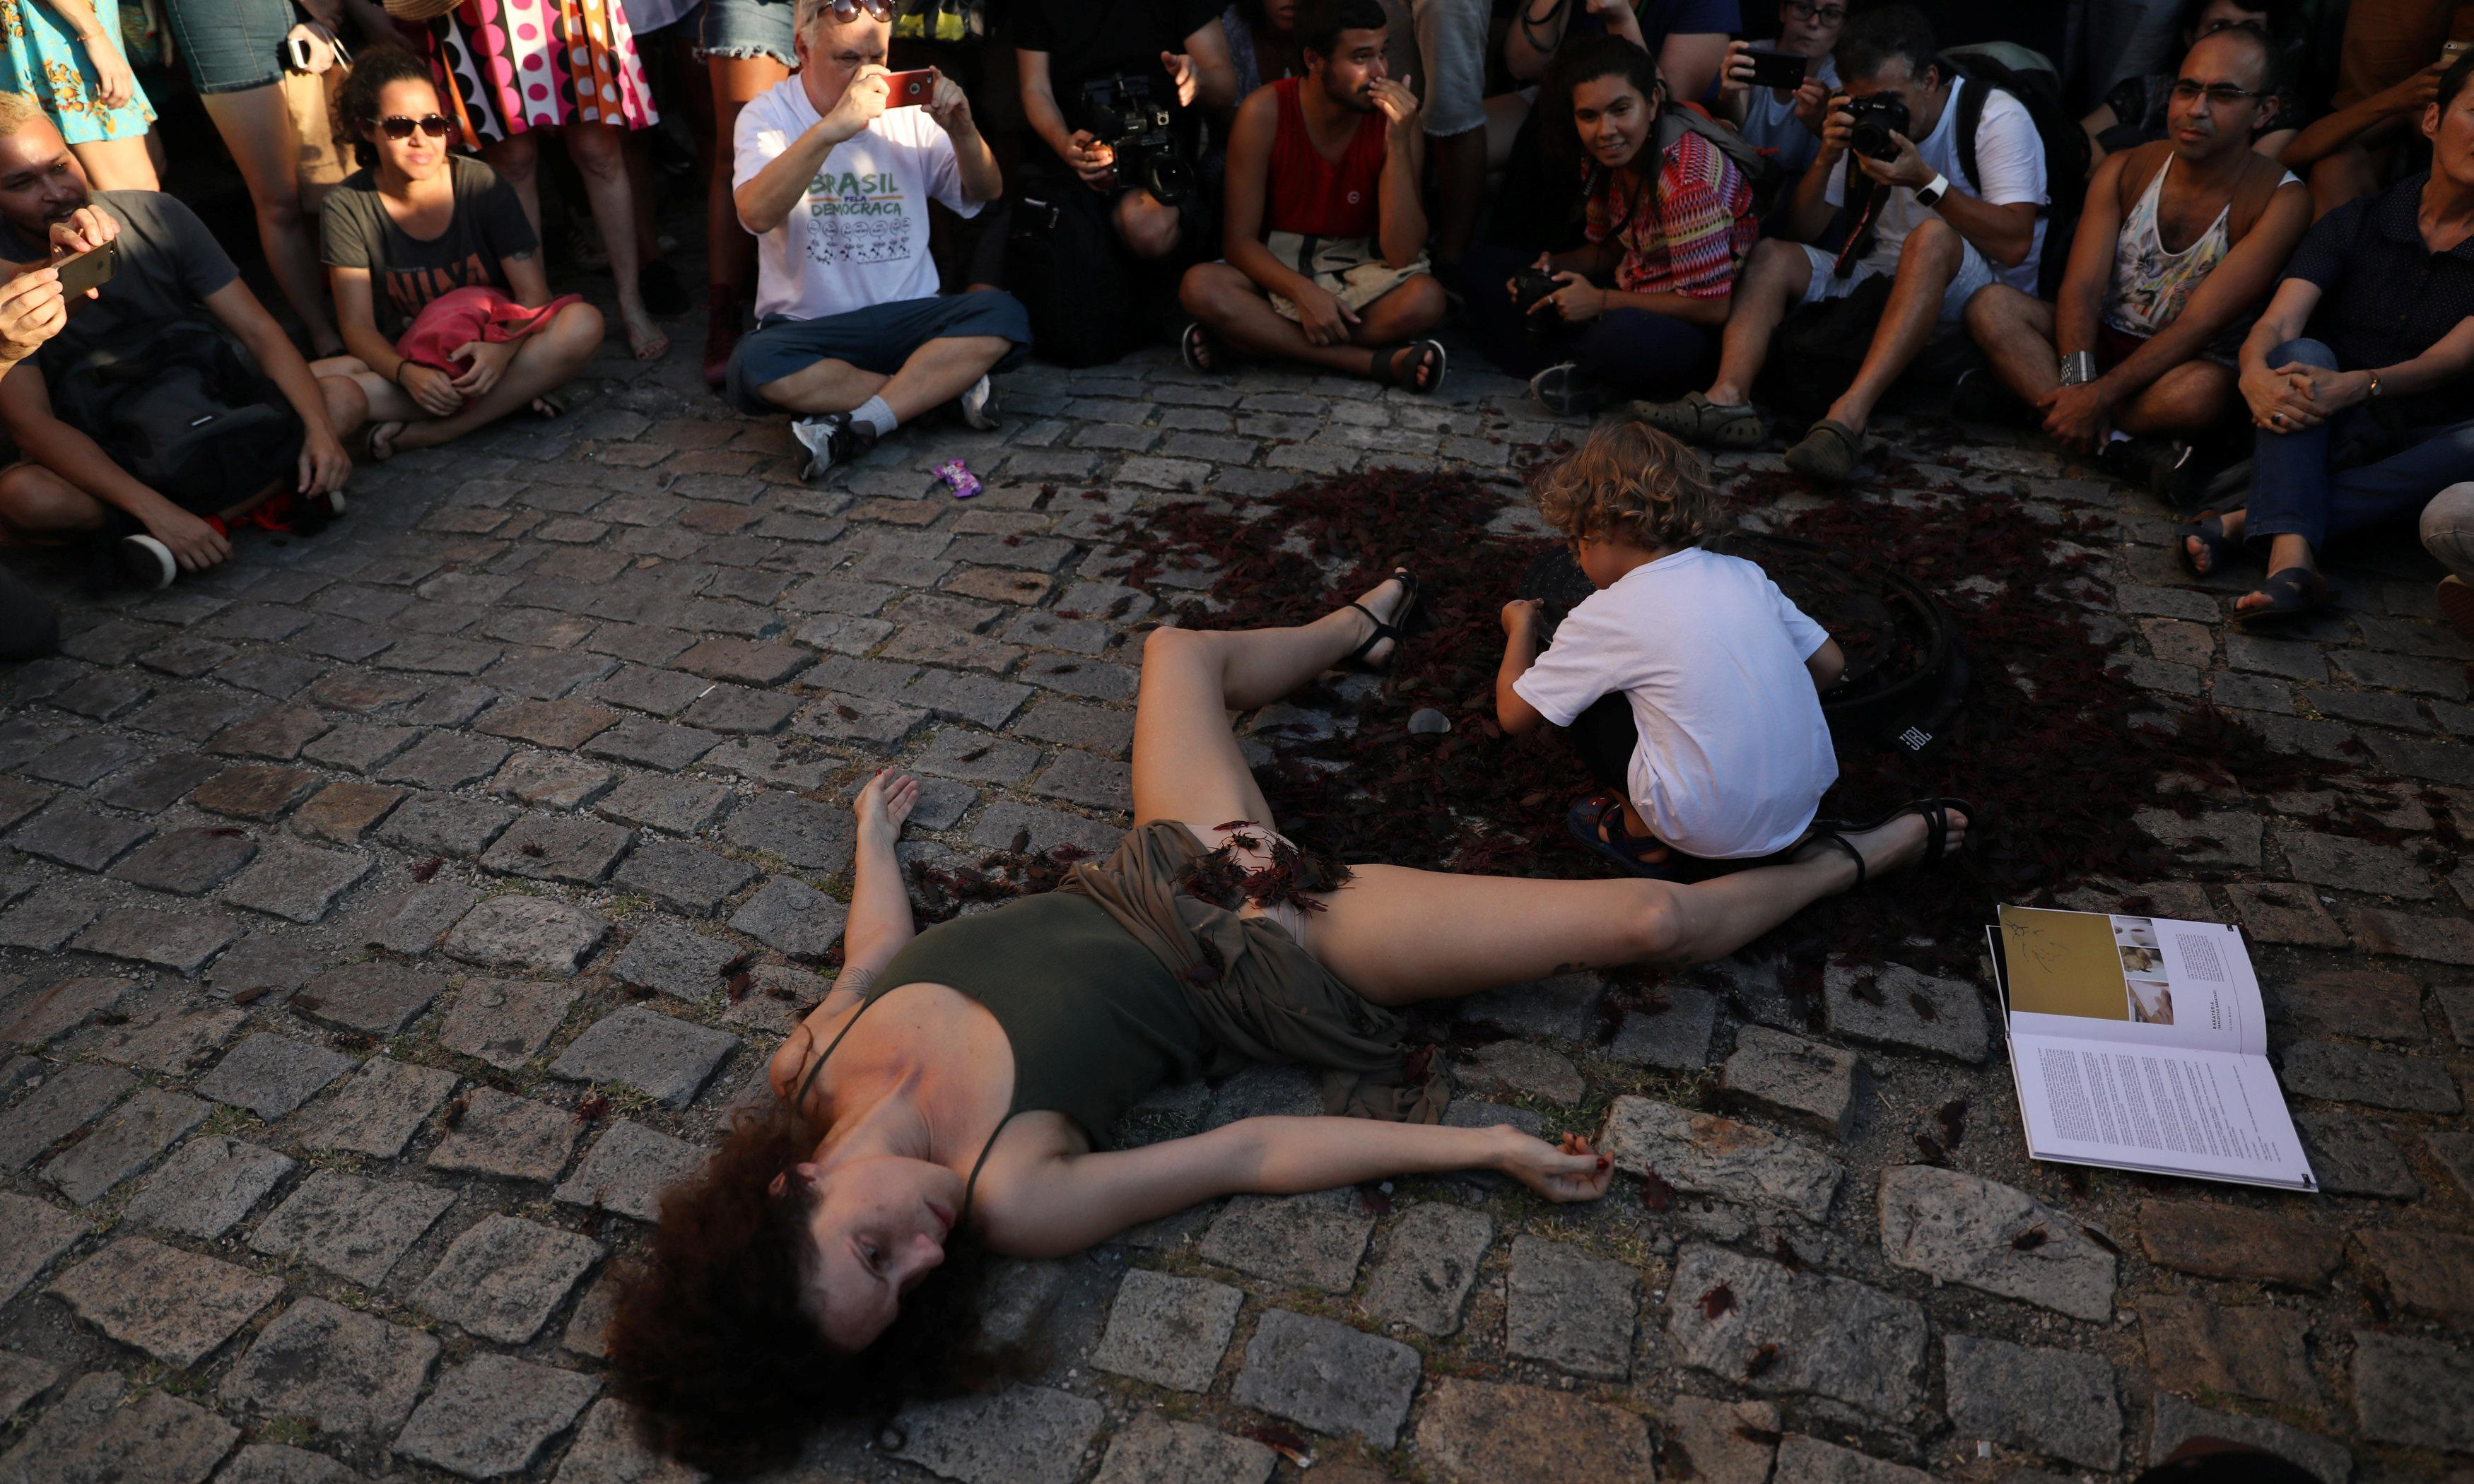 Rio artists stage show on street in protest against censorship